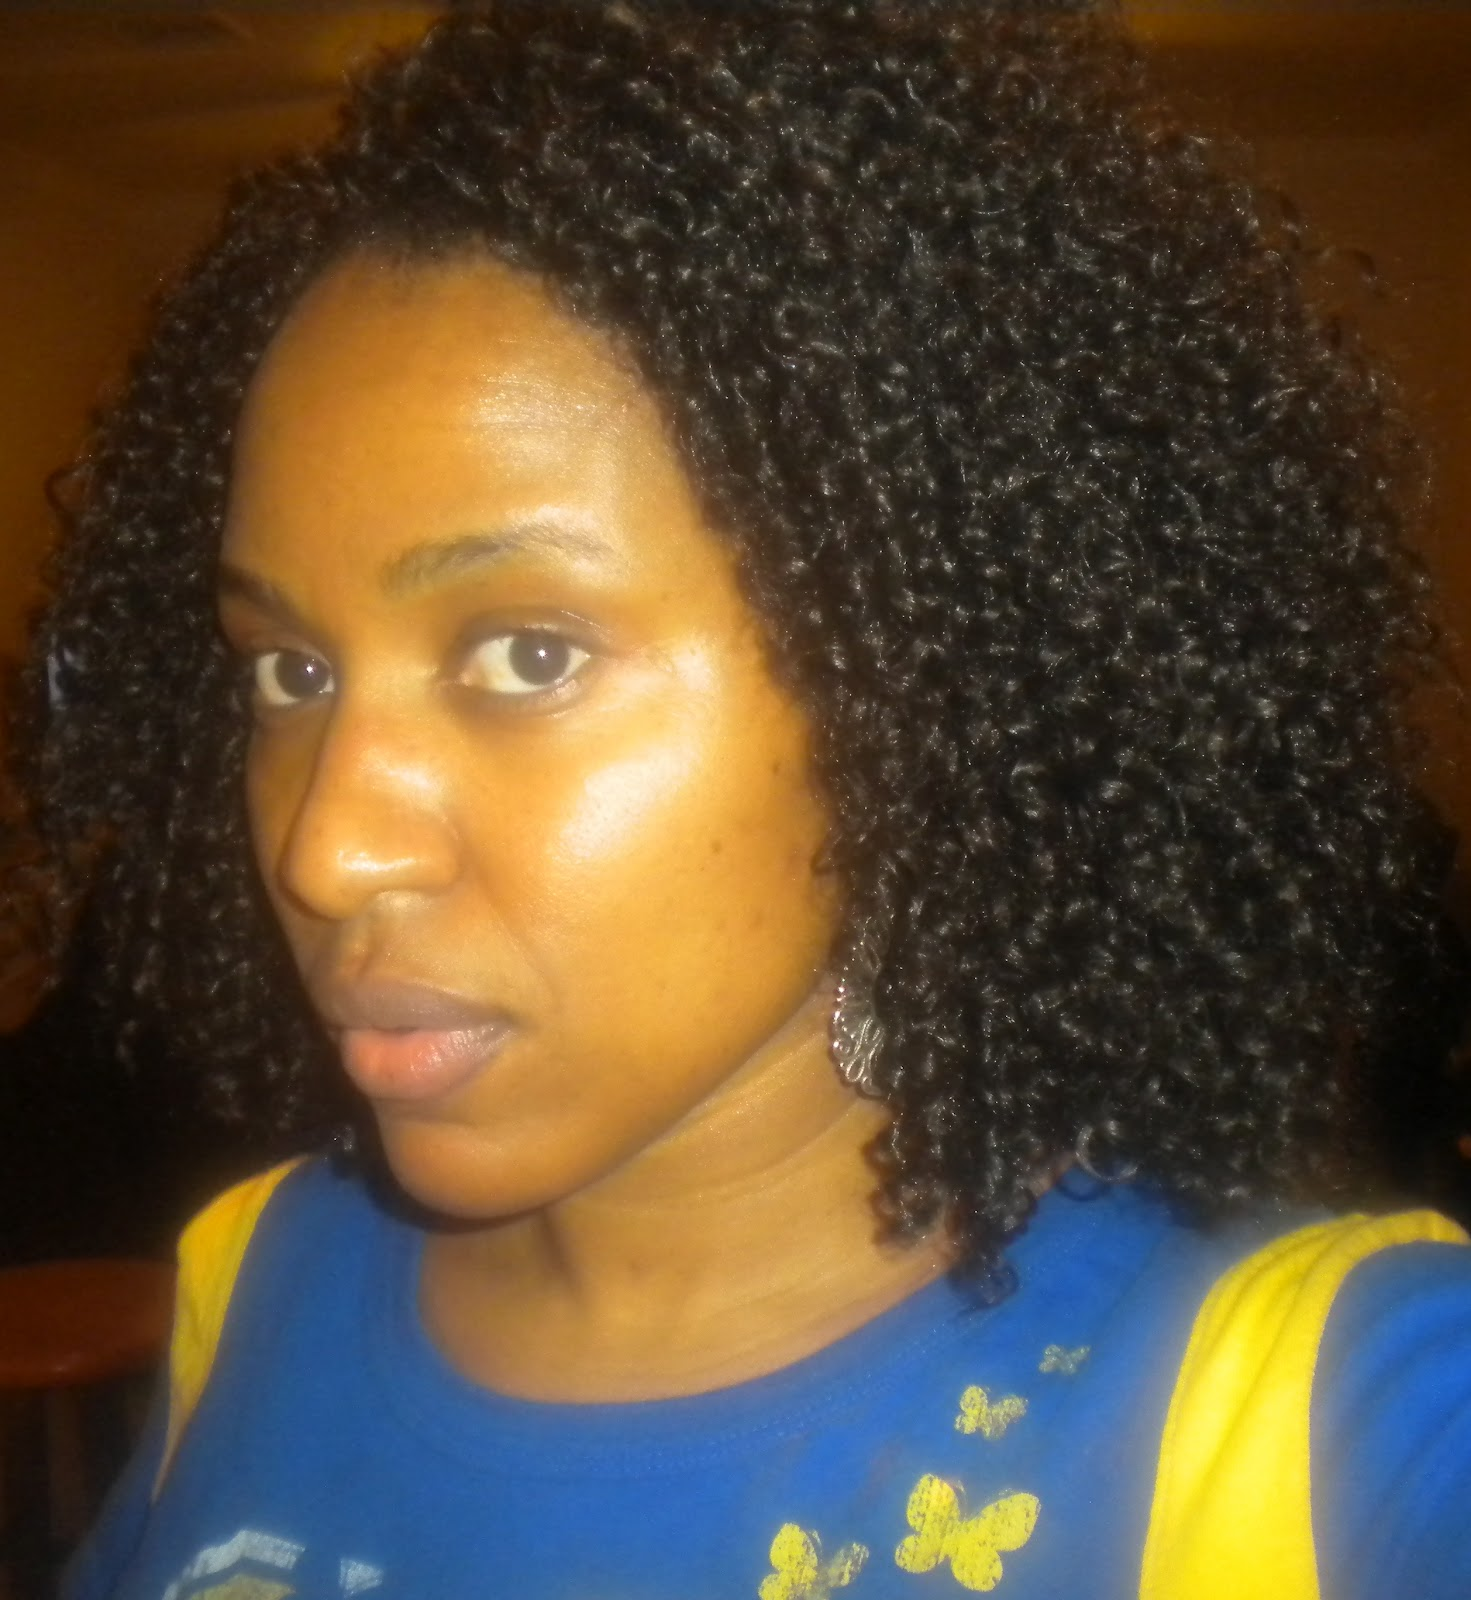 Crochet Braids Curly : pinned my braids upward and crocheted my curly synthetic braiding ...